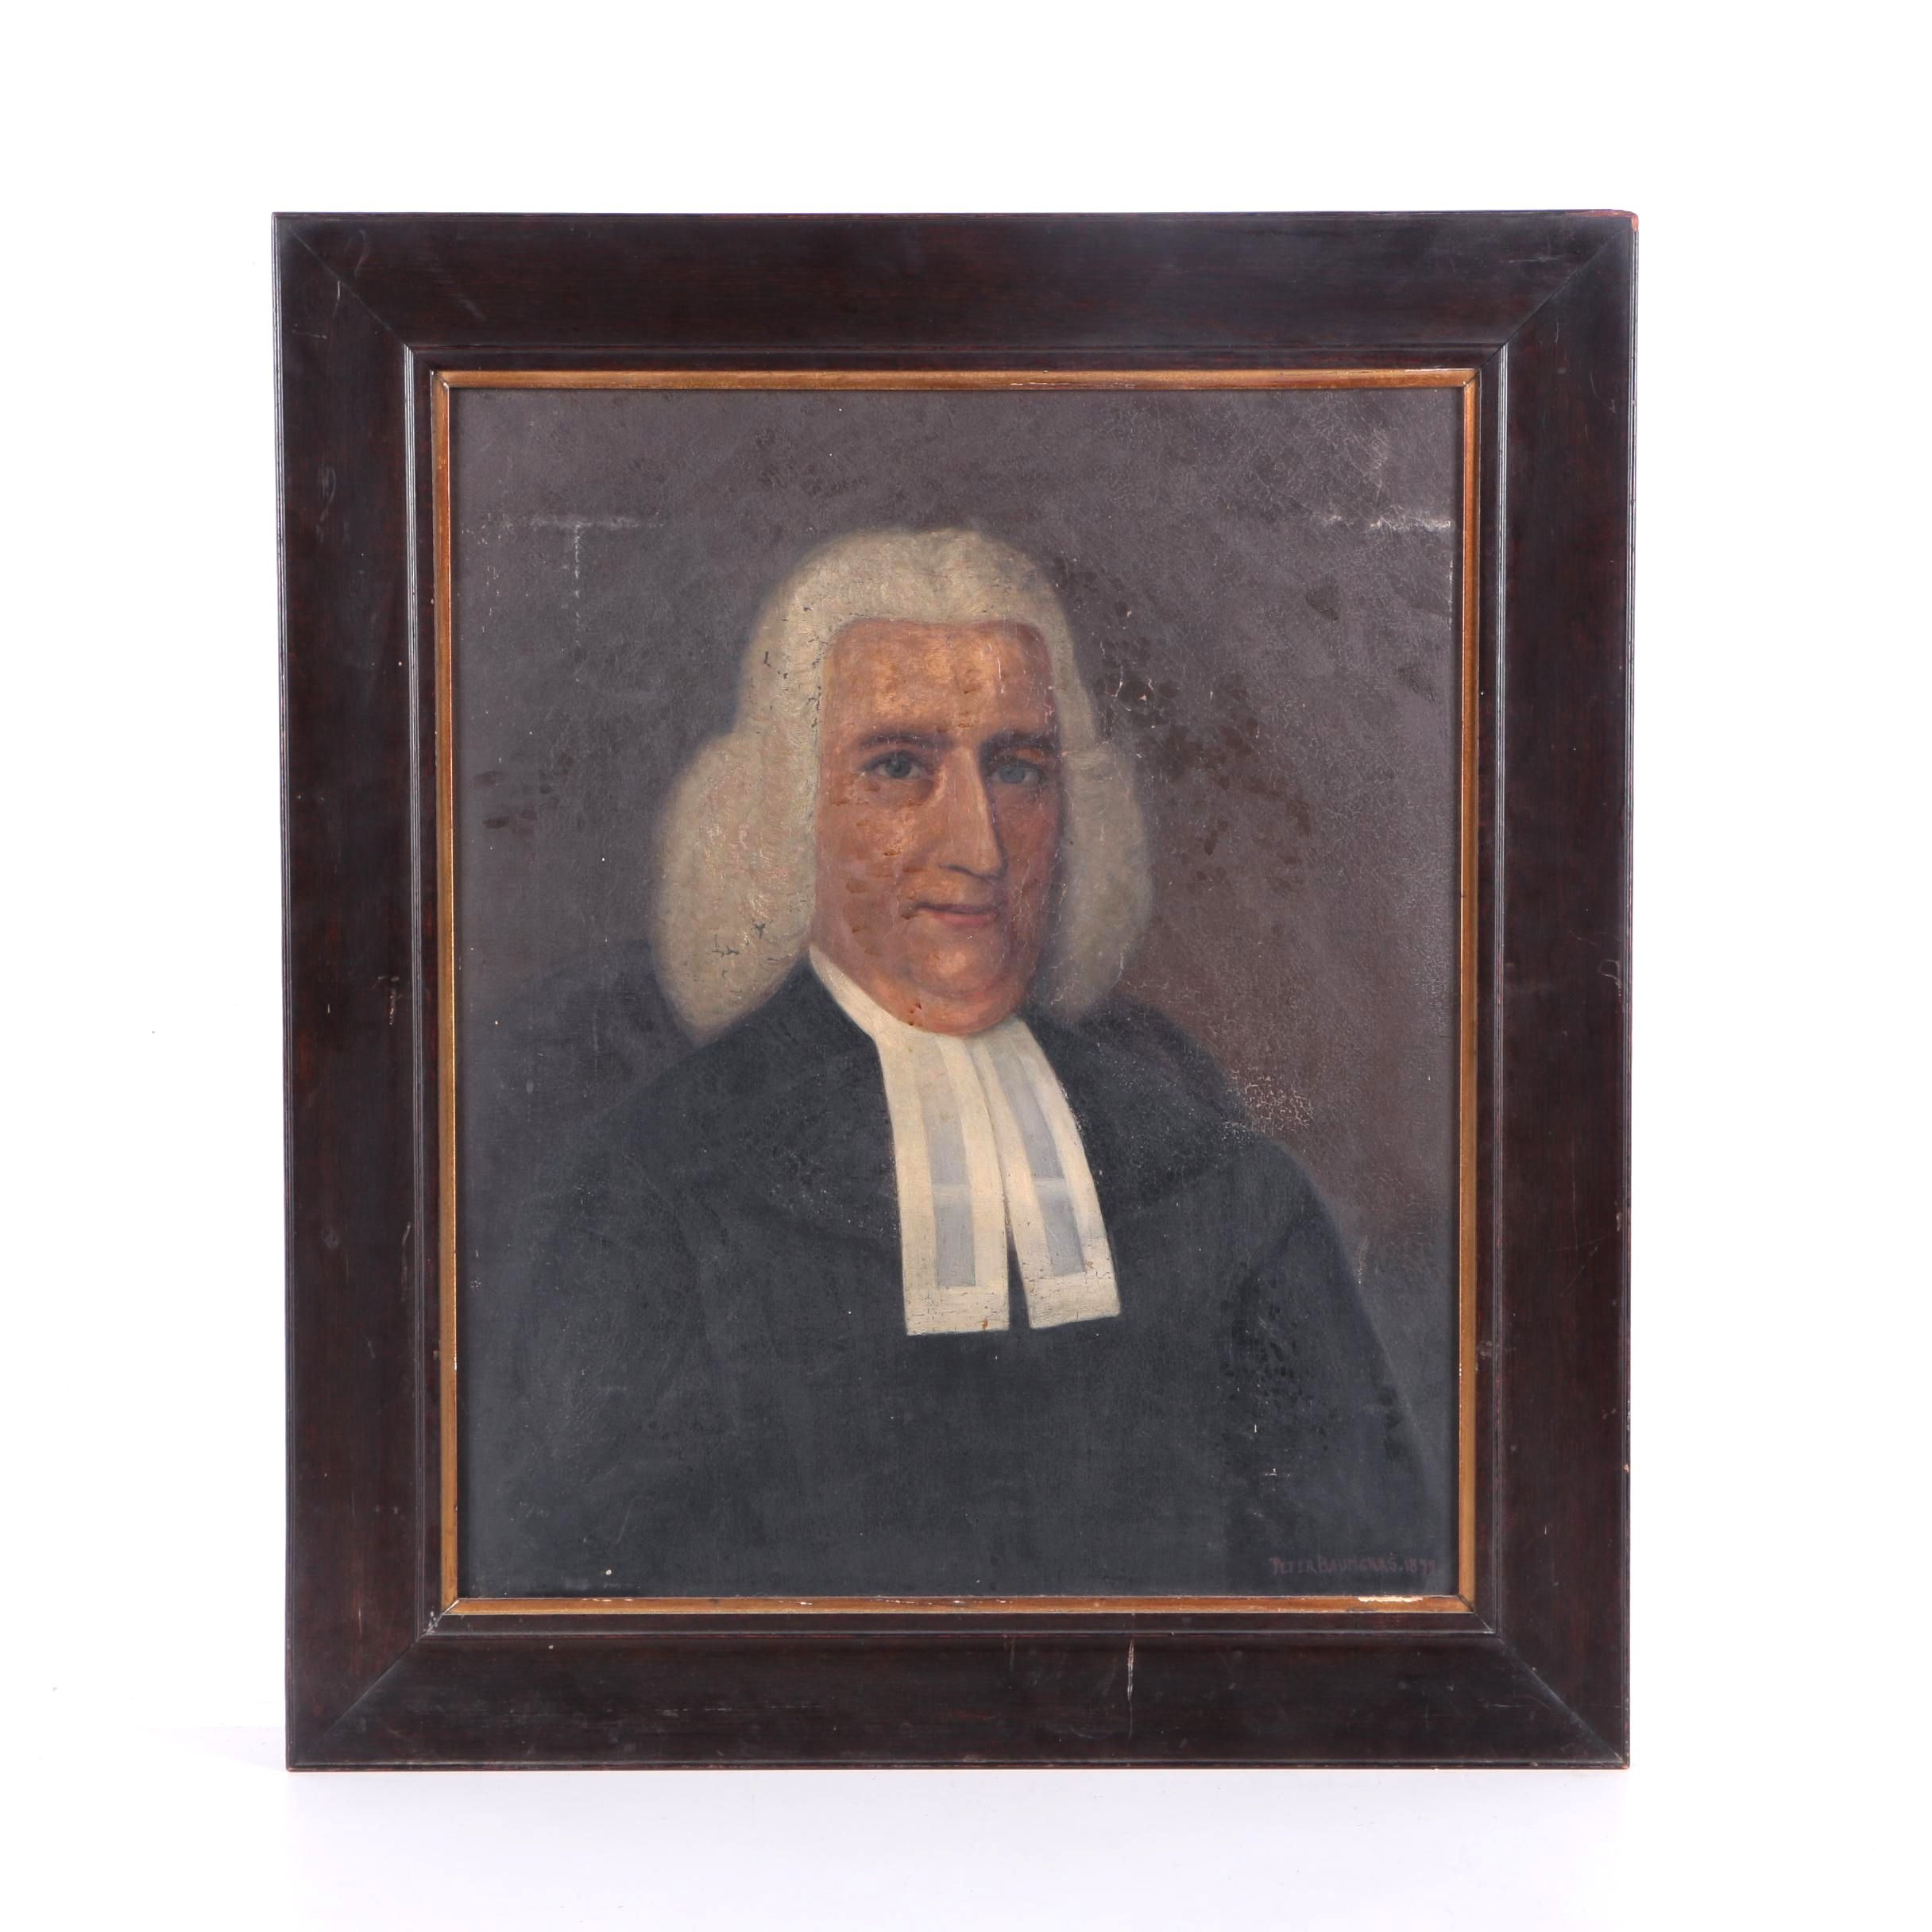 Peter Baumgras Oil Painting on Canvas of Judicial Figure